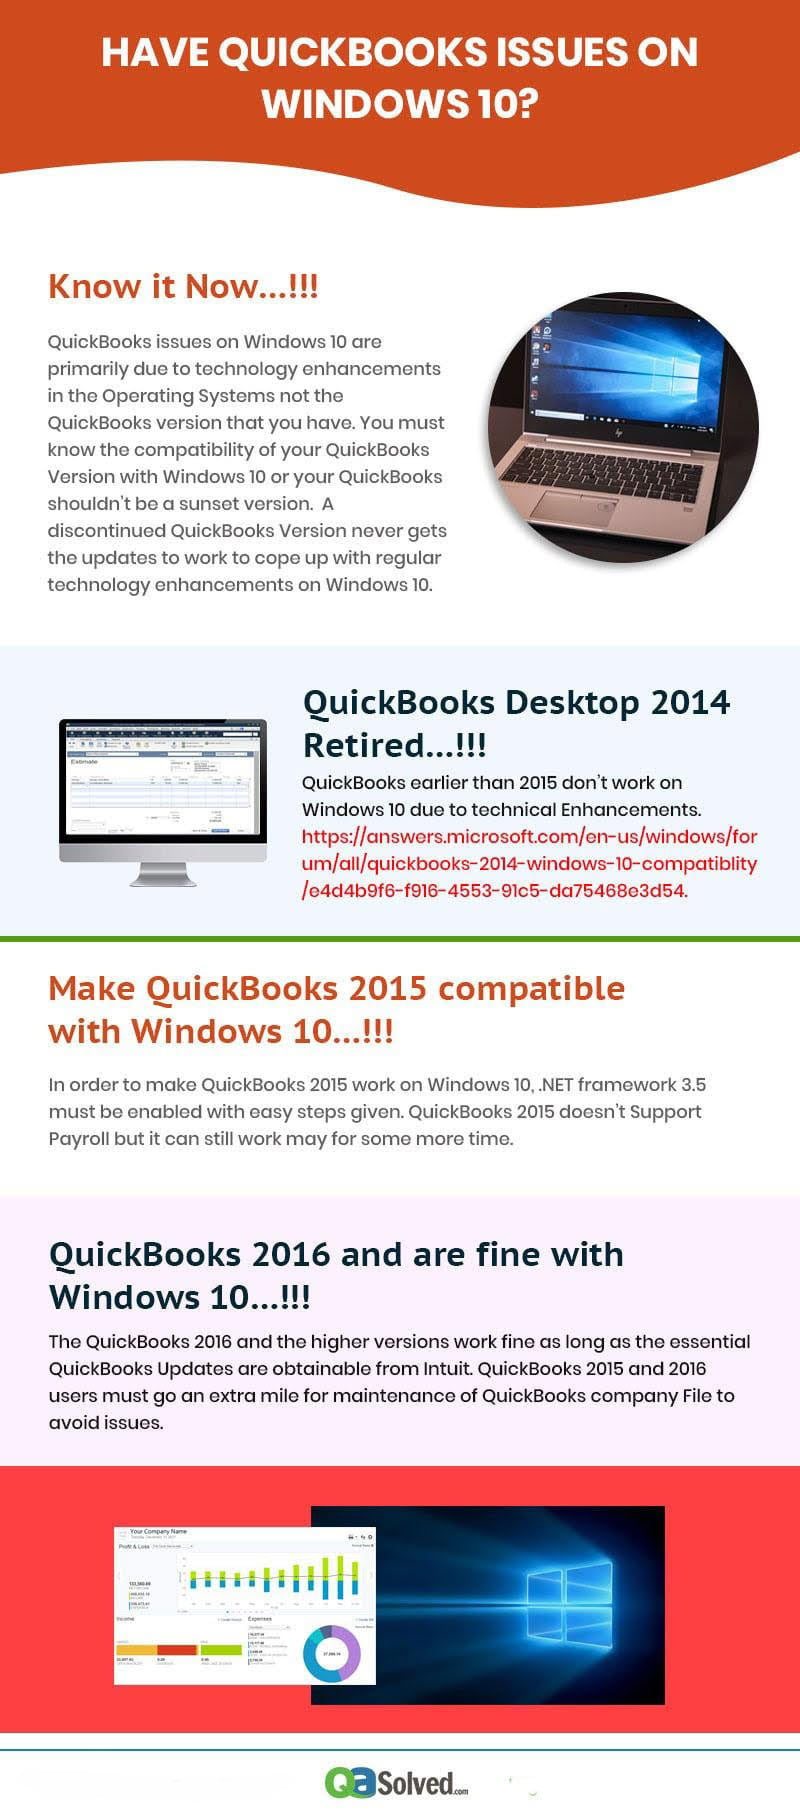 quickbooks compatibility issues with Windows 10